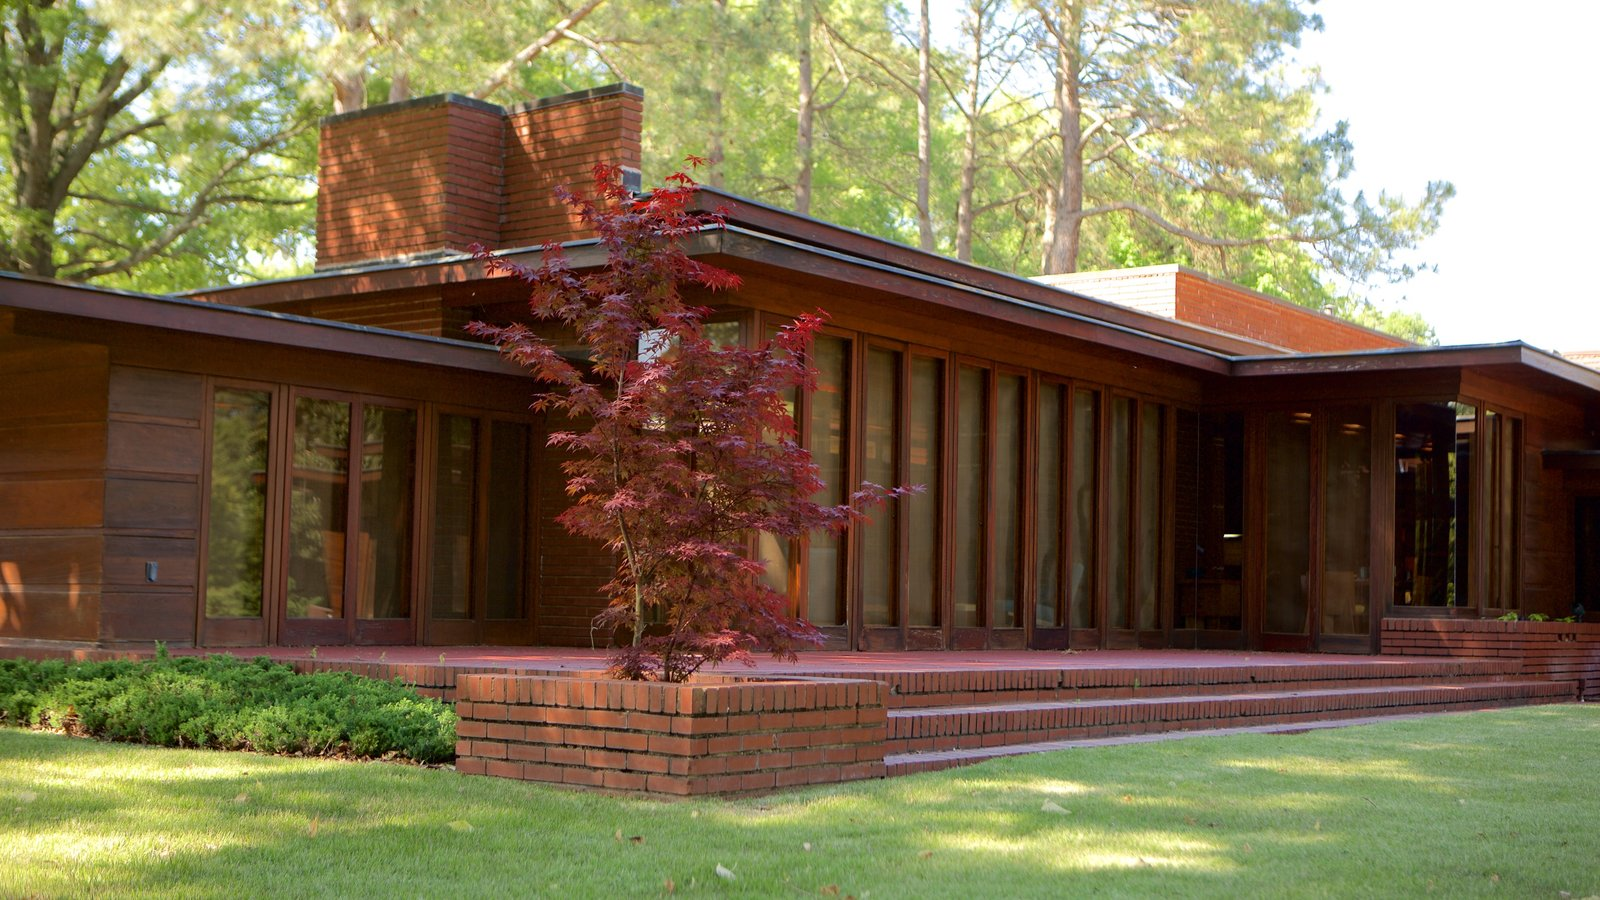 Modern Architecture Frank Lloyd Wright modern architecture pictures: view images of frank lloyd wright